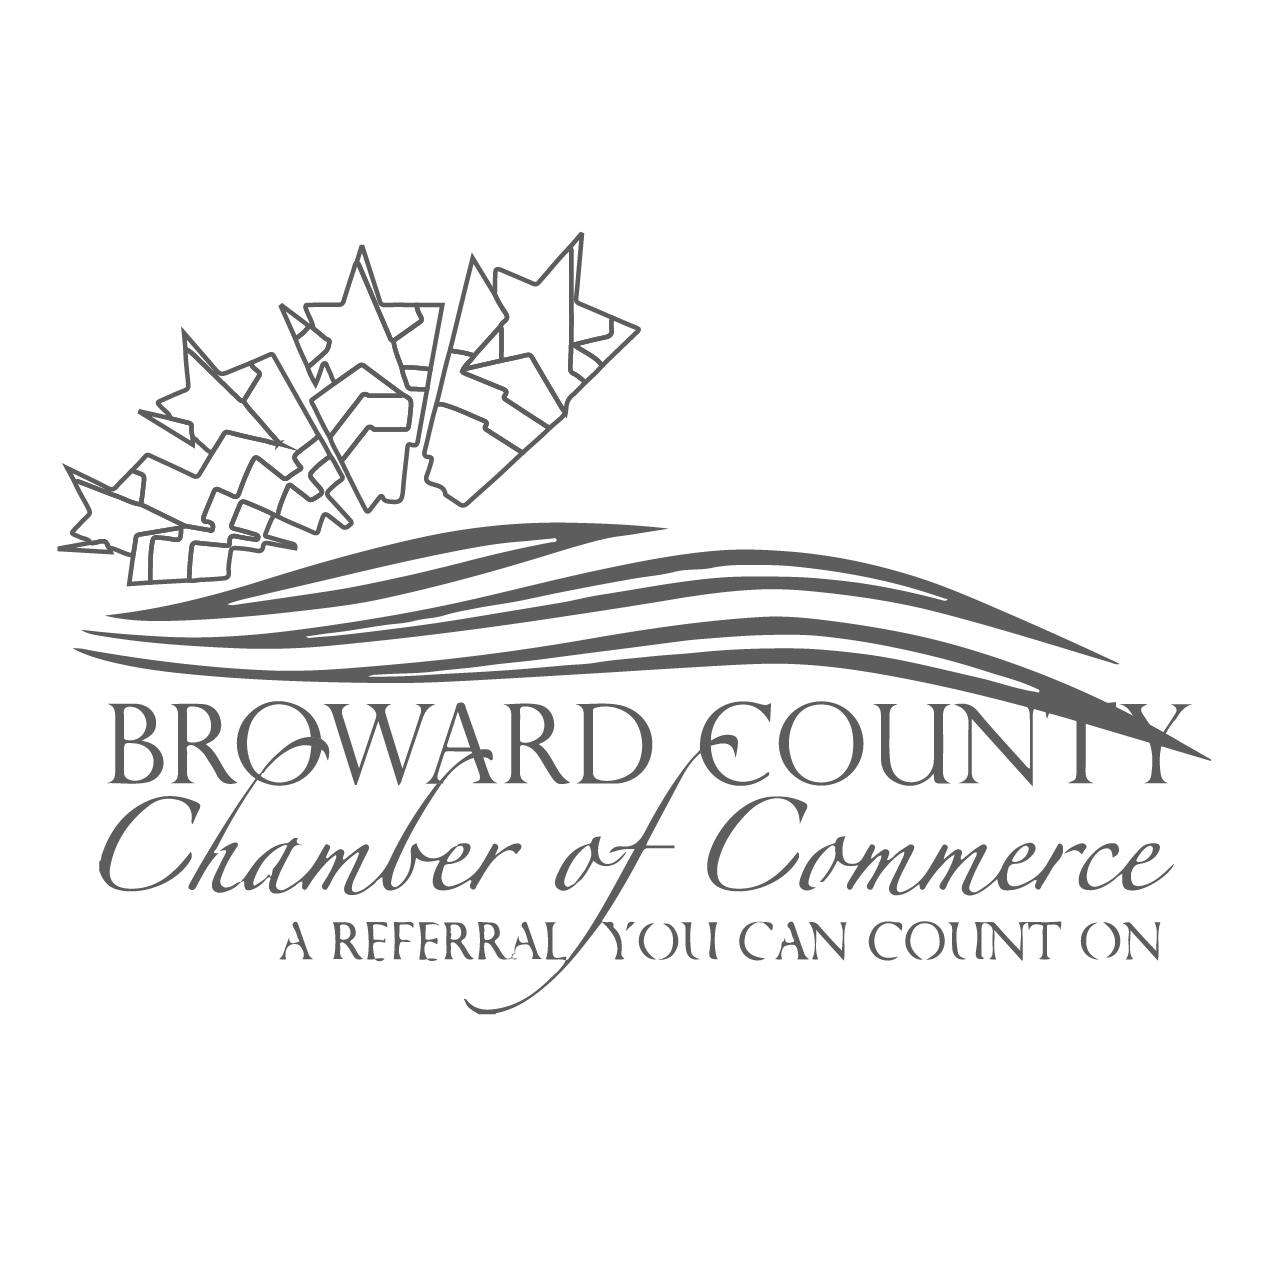 broward county chamber of commerce logo